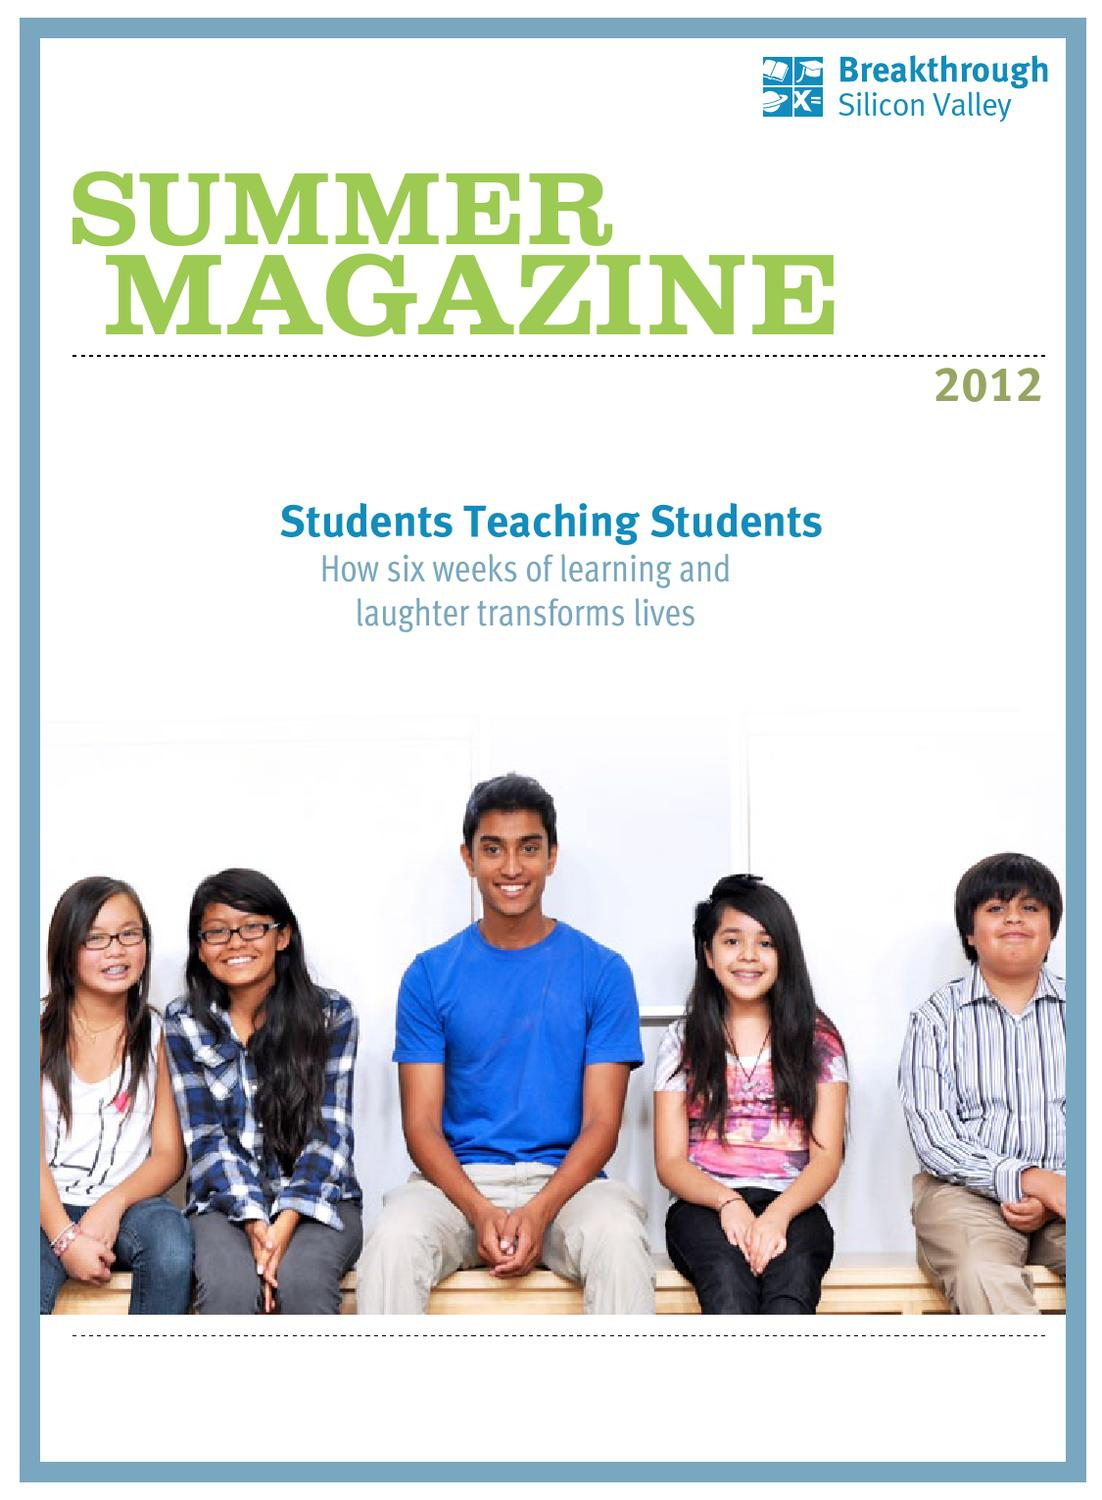 breakthrough silicon valley summer magazine by breakthrough breakthrough silicon valley summer magazine 2012